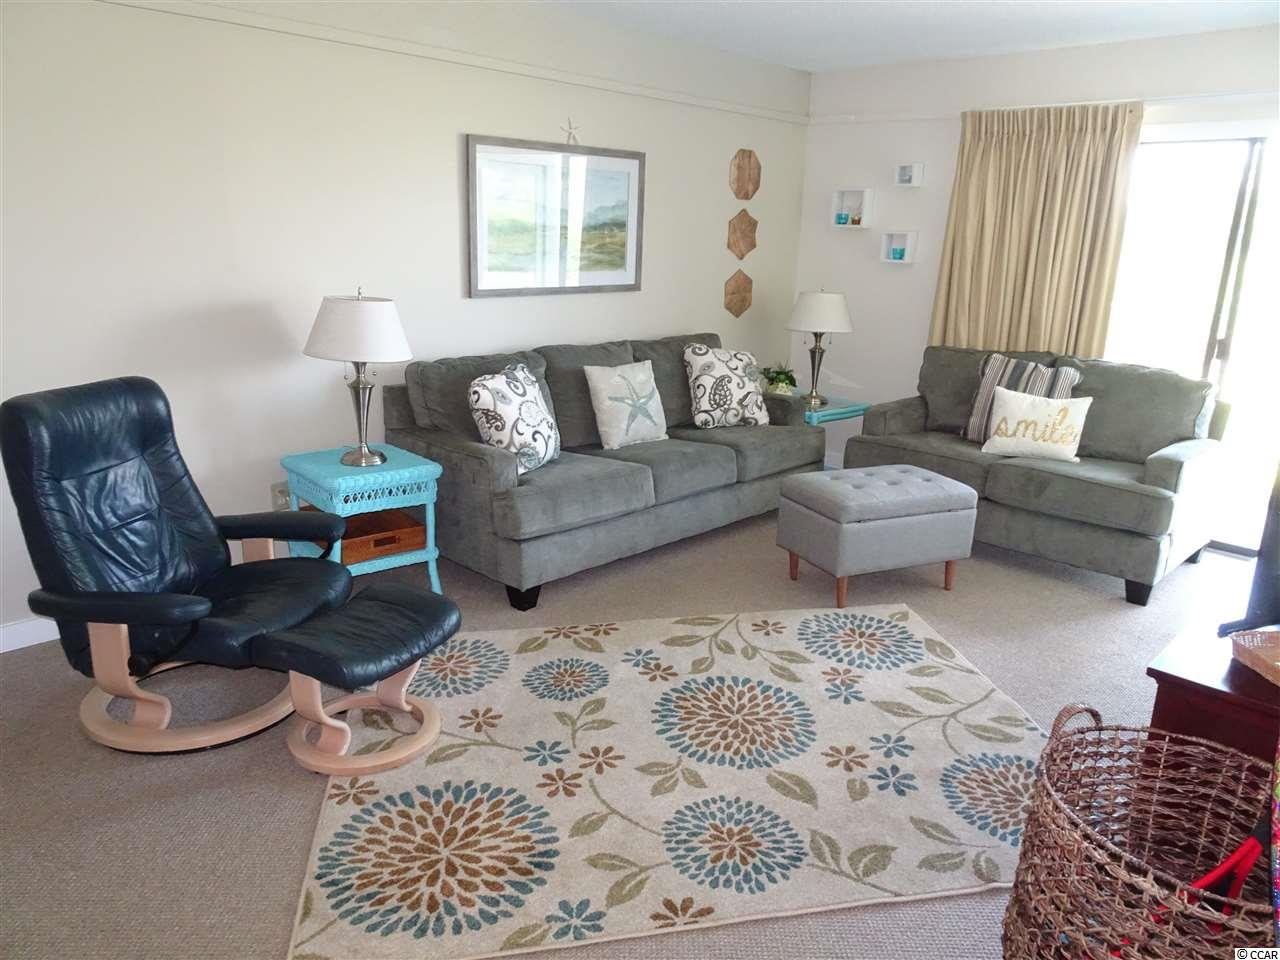 Inlet Point Villas - Litchfield condo at 9D Inlet Point Drive for sale. 1715930